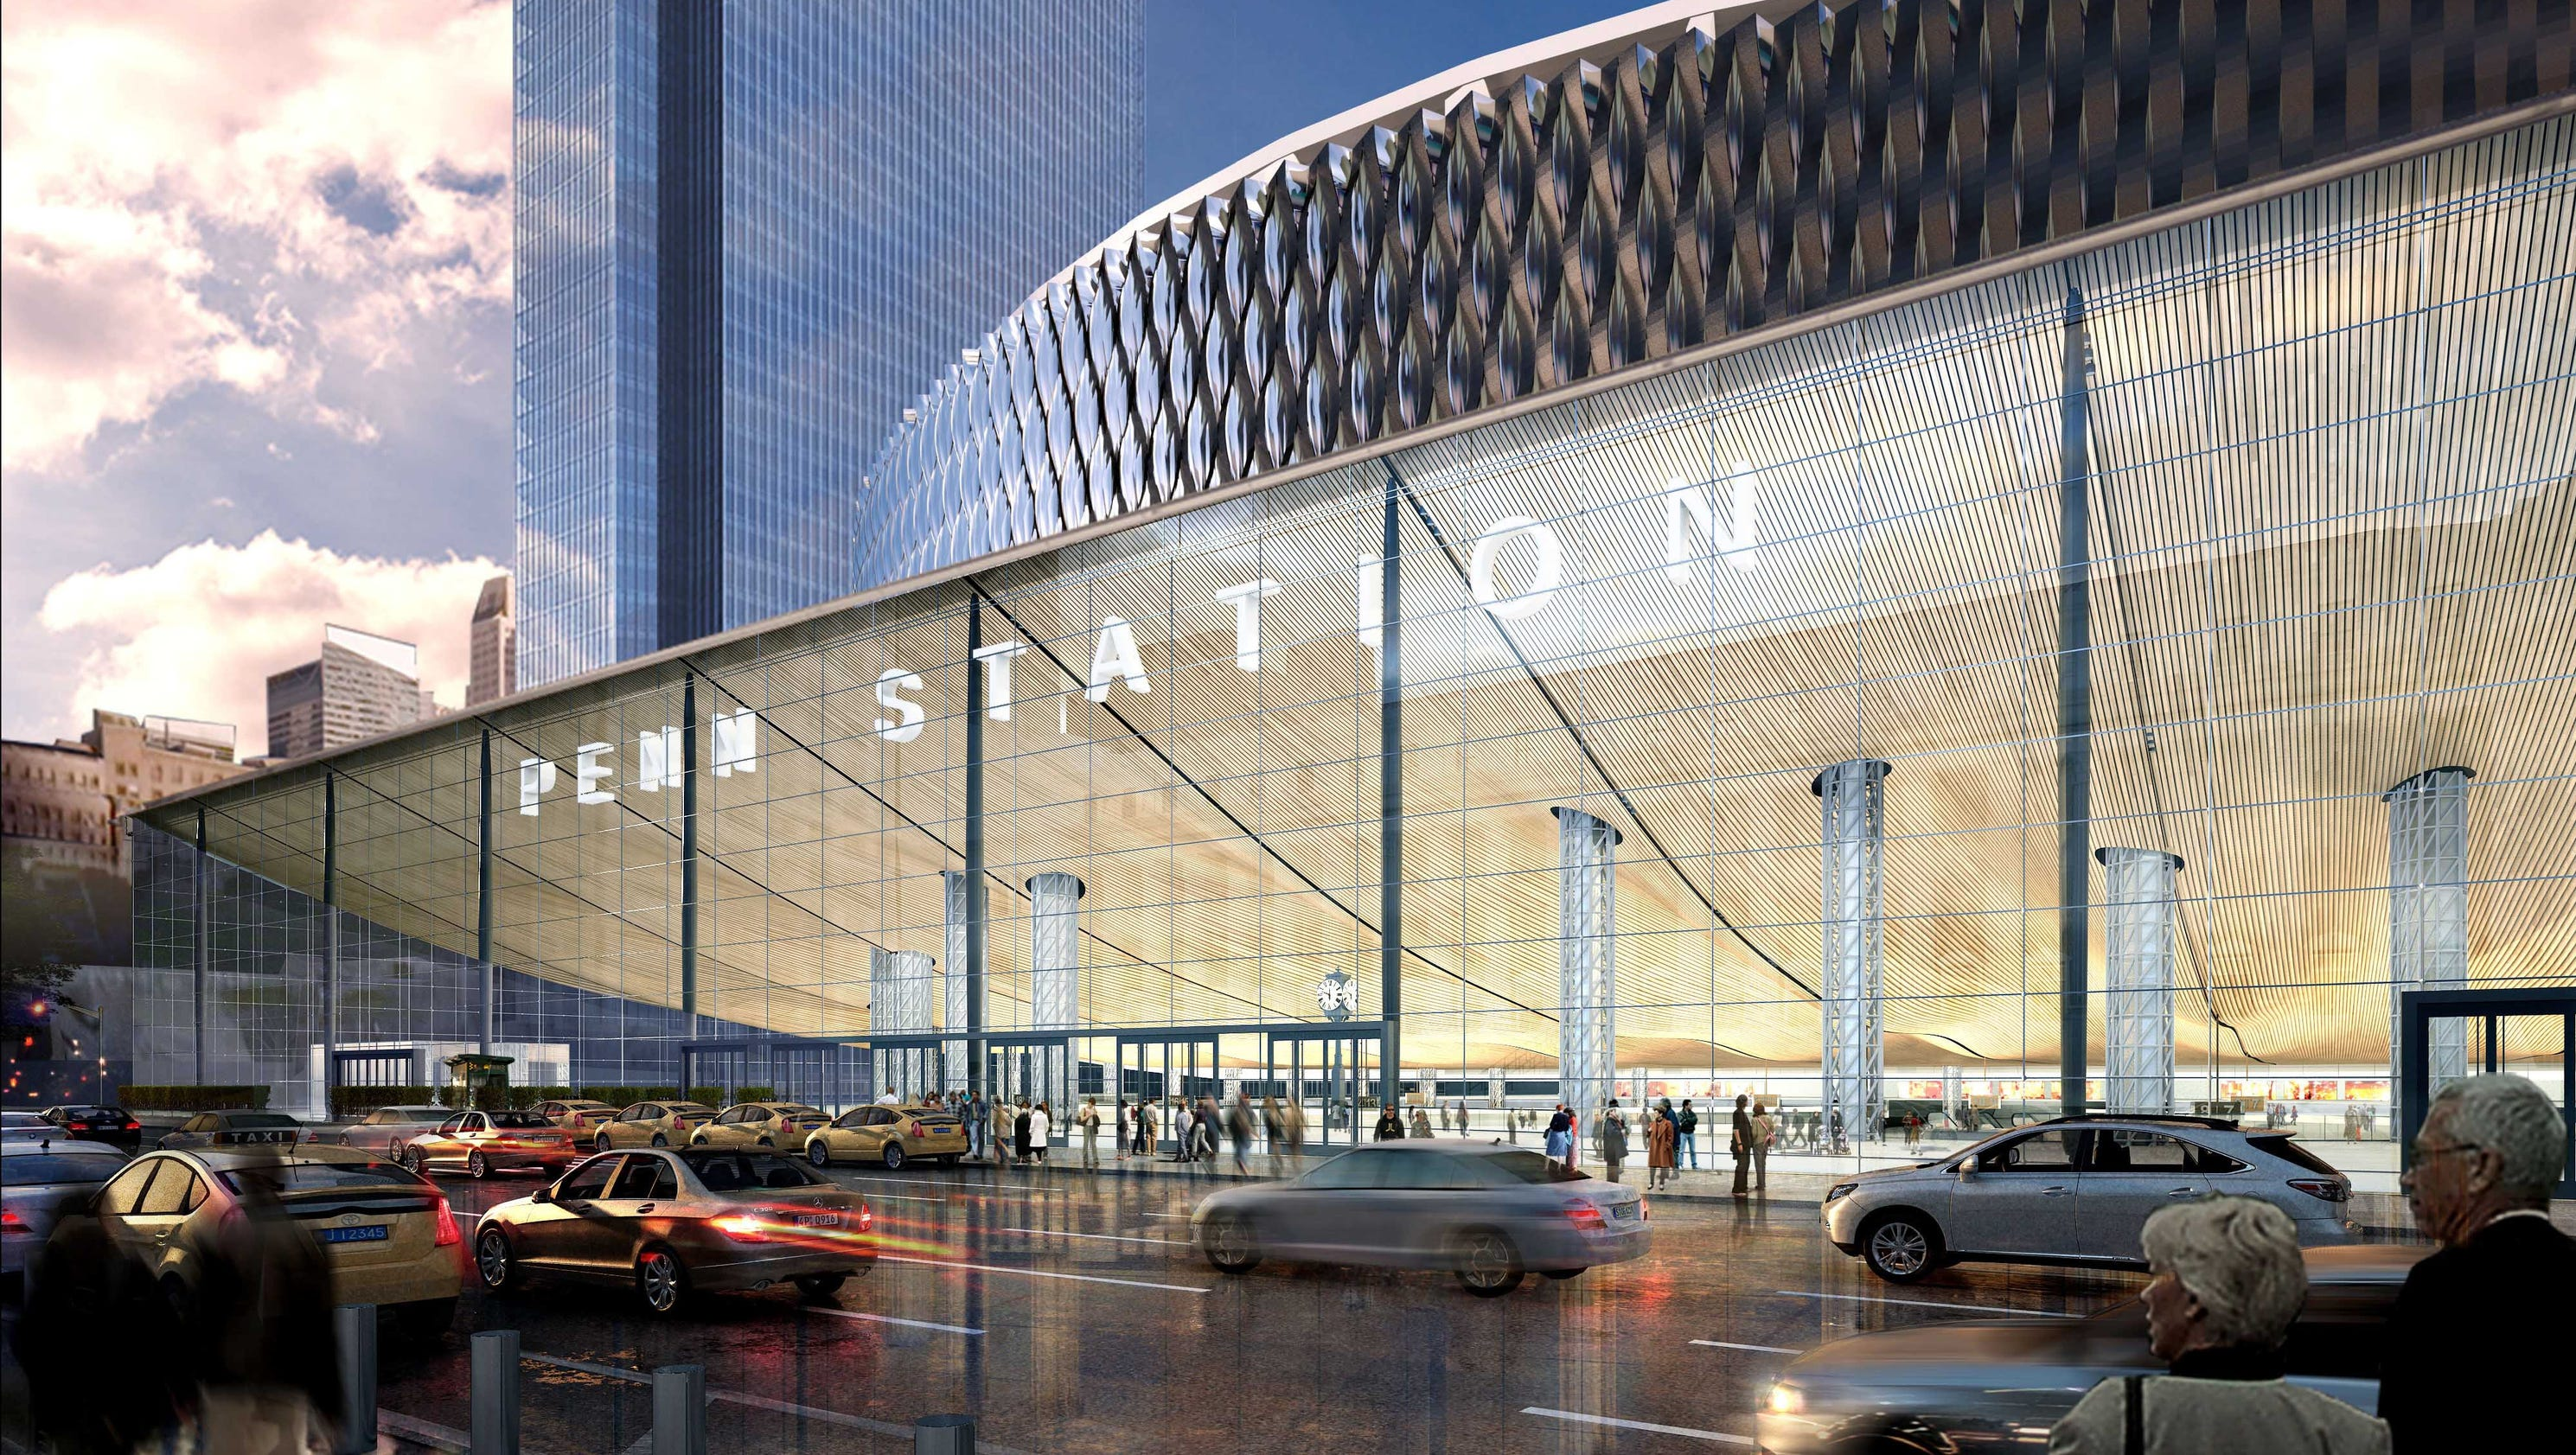 How To Get To Madison Square Garden From Penn Station